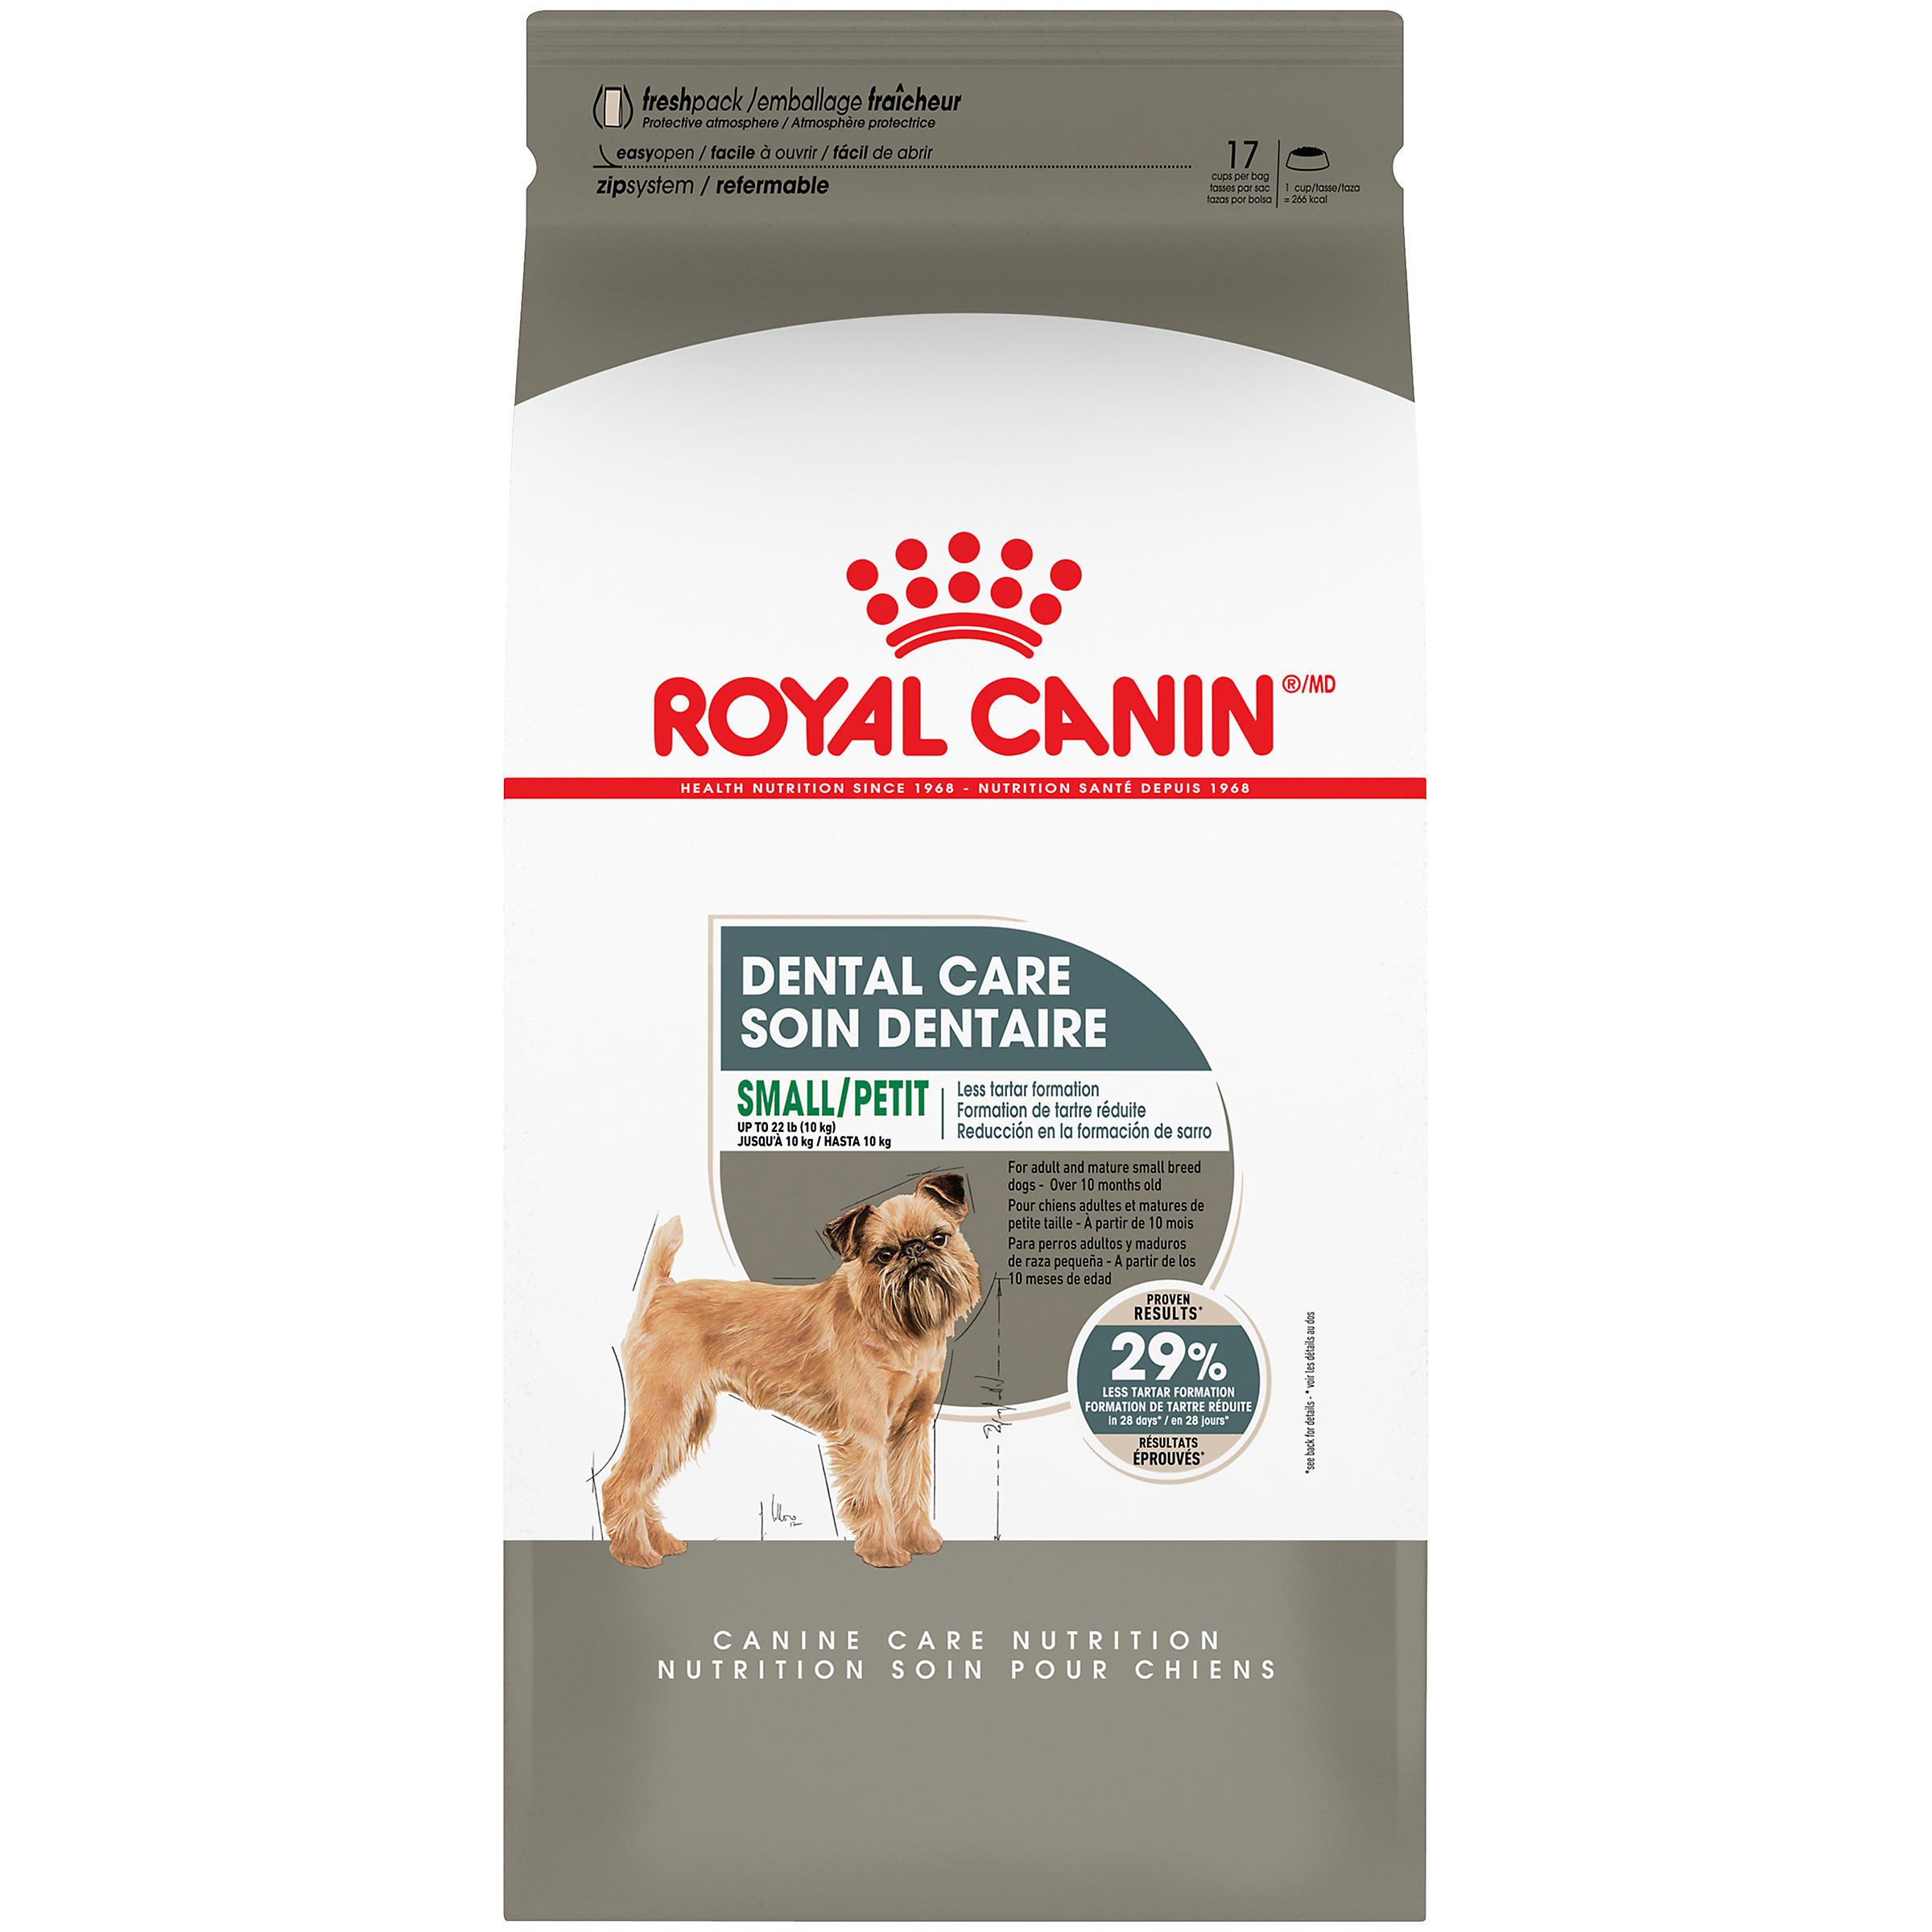 Royal Canin Canine Care Nutrition Small Dental Care Dry Dog Food